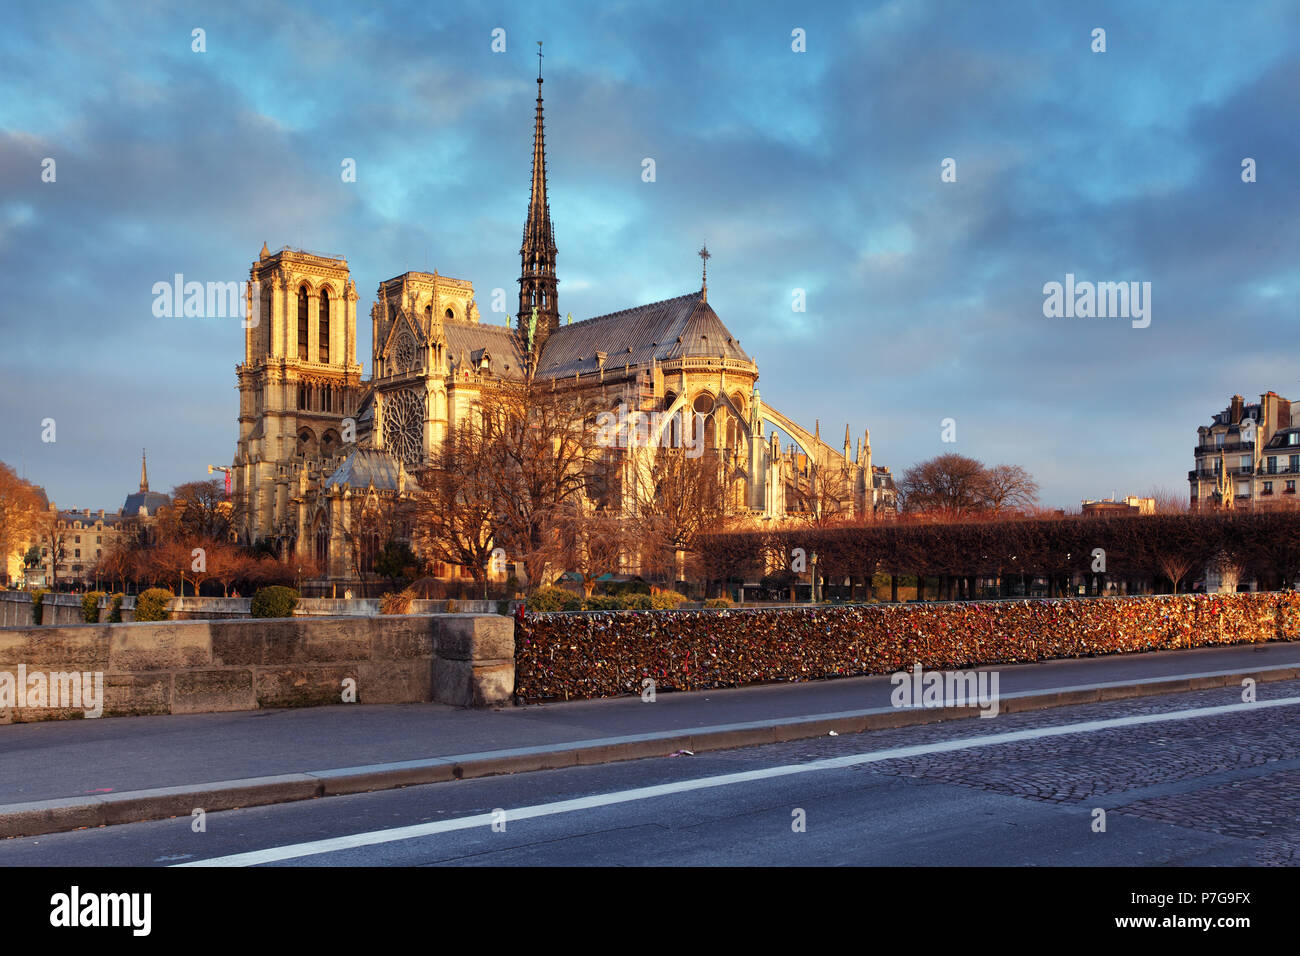 Notre Dame of Paris arches and structure at sunrise light - Stock Image